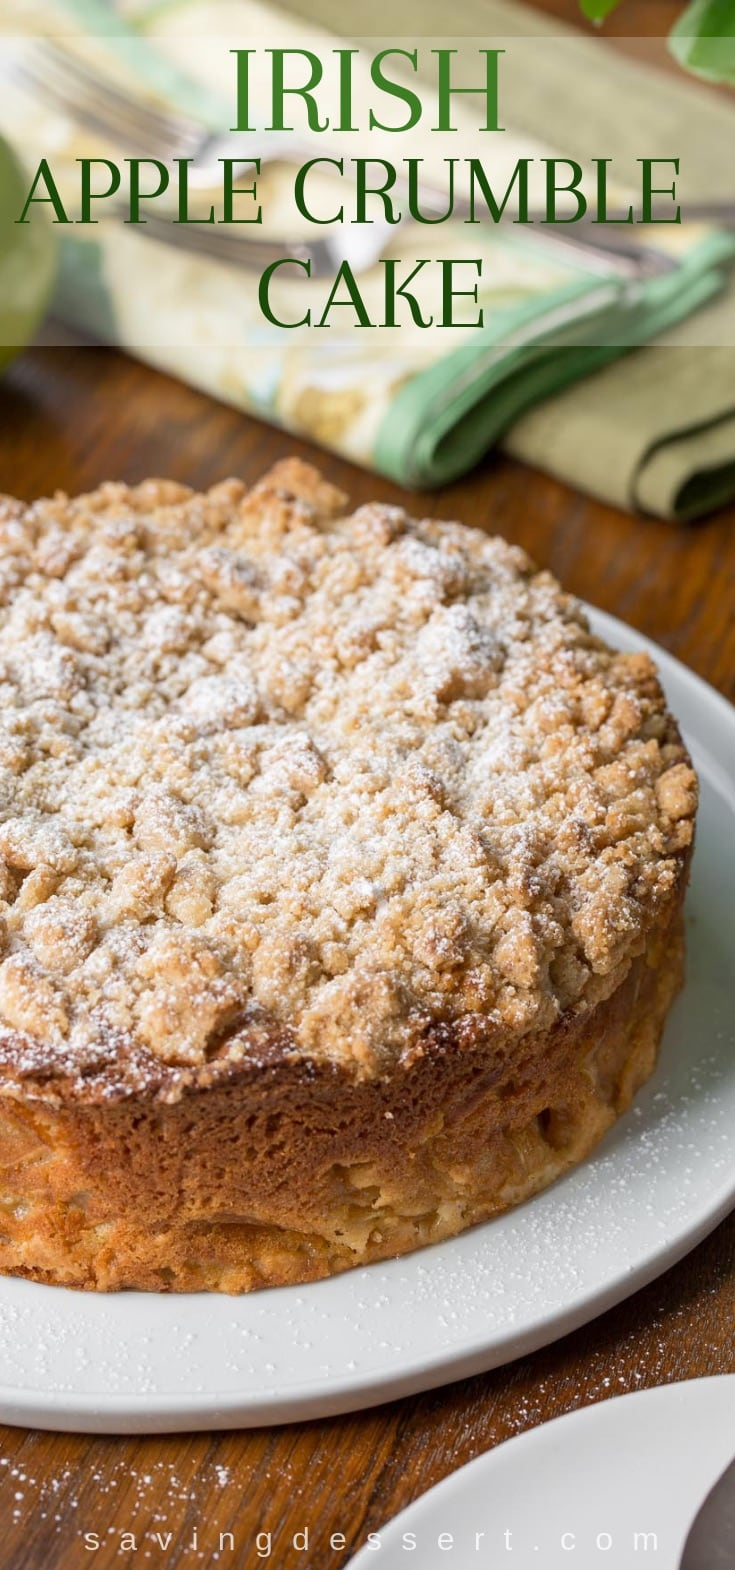 An Irish Apple Crumble Cake dusted with powdered sugar